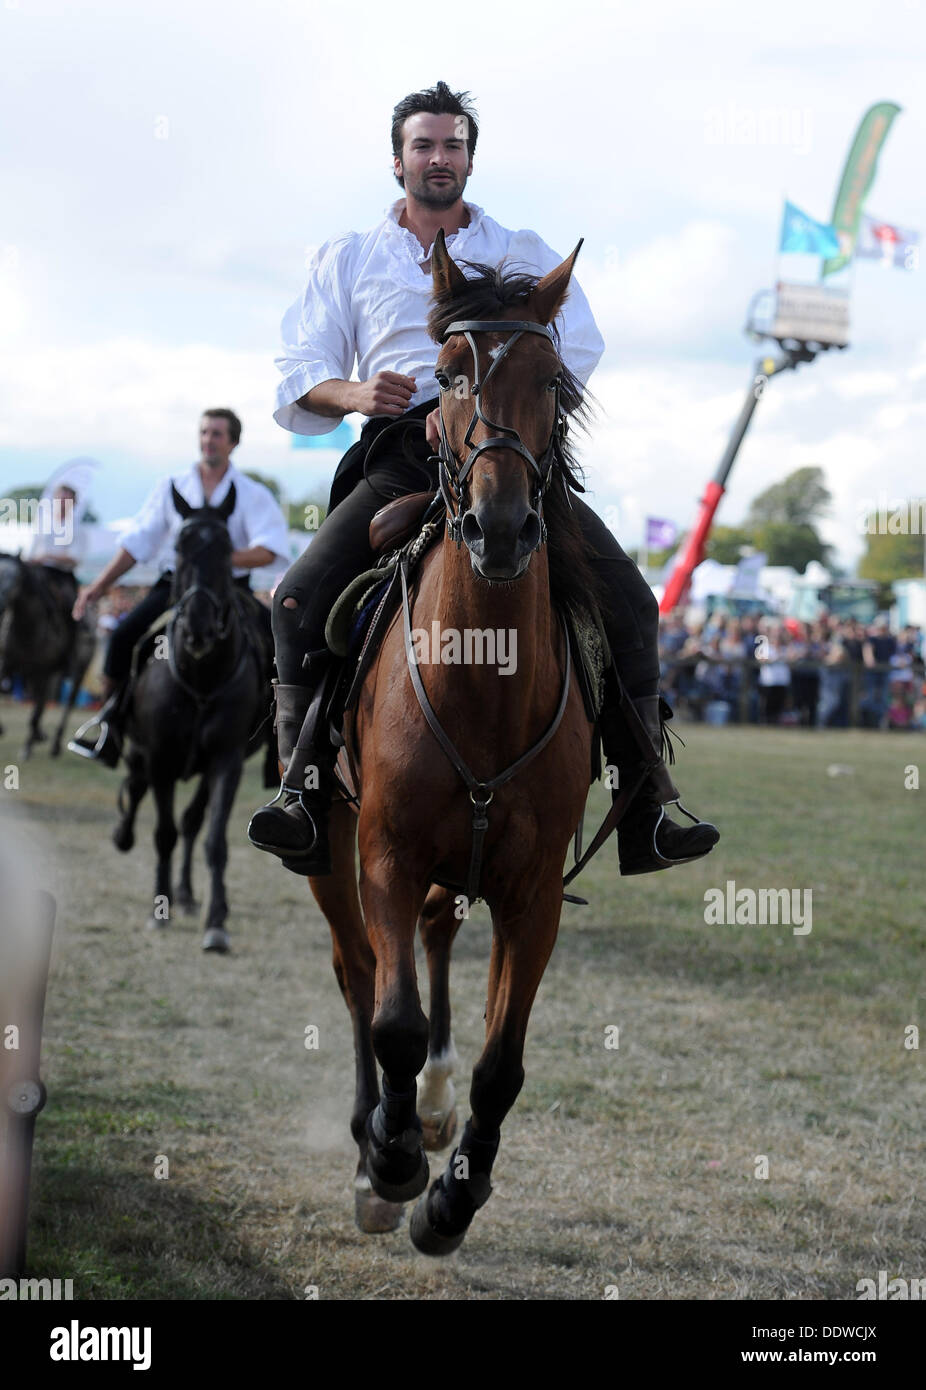 Dorset County Show, Britain, UK, The Devil's Horsemen Stunt Team, pictured is one of horses that played Joey in the movie Warhorse, 07th September, 2013  Picture by Geoff Moore/Dorset Media Service/Alamy Live News - Stock Image